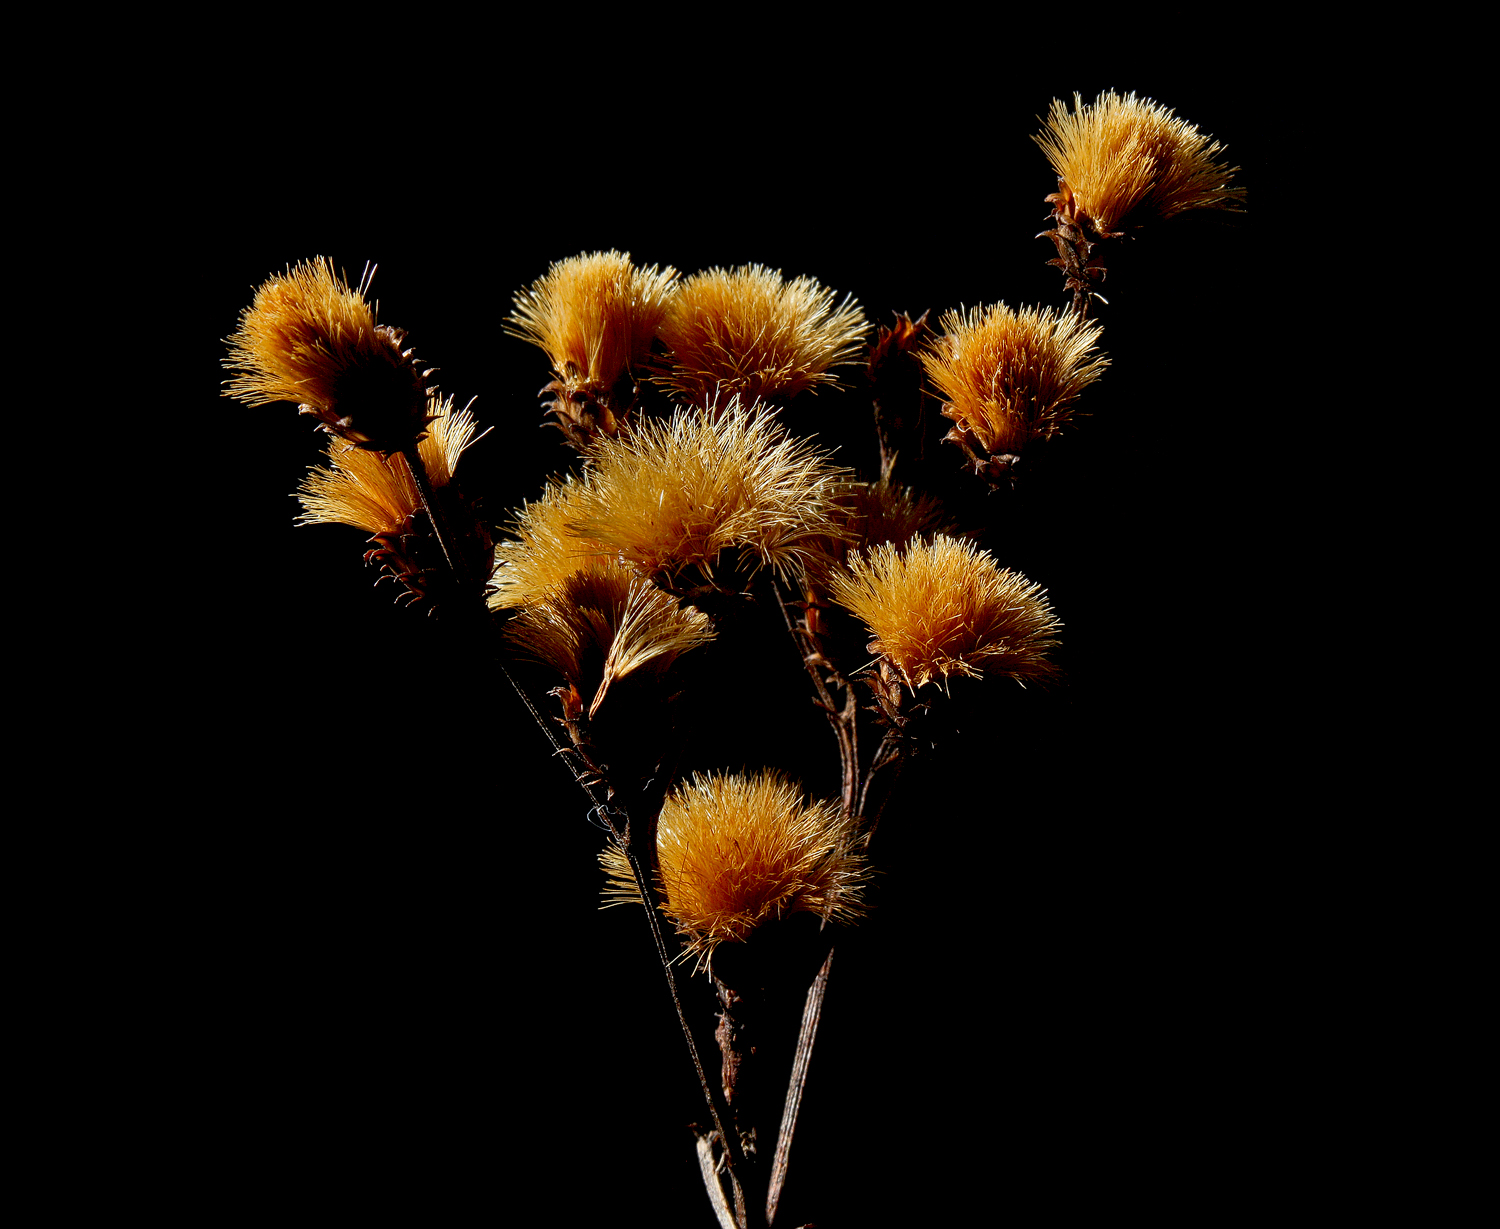 ironweed bristles img aw author sava gregory and verena